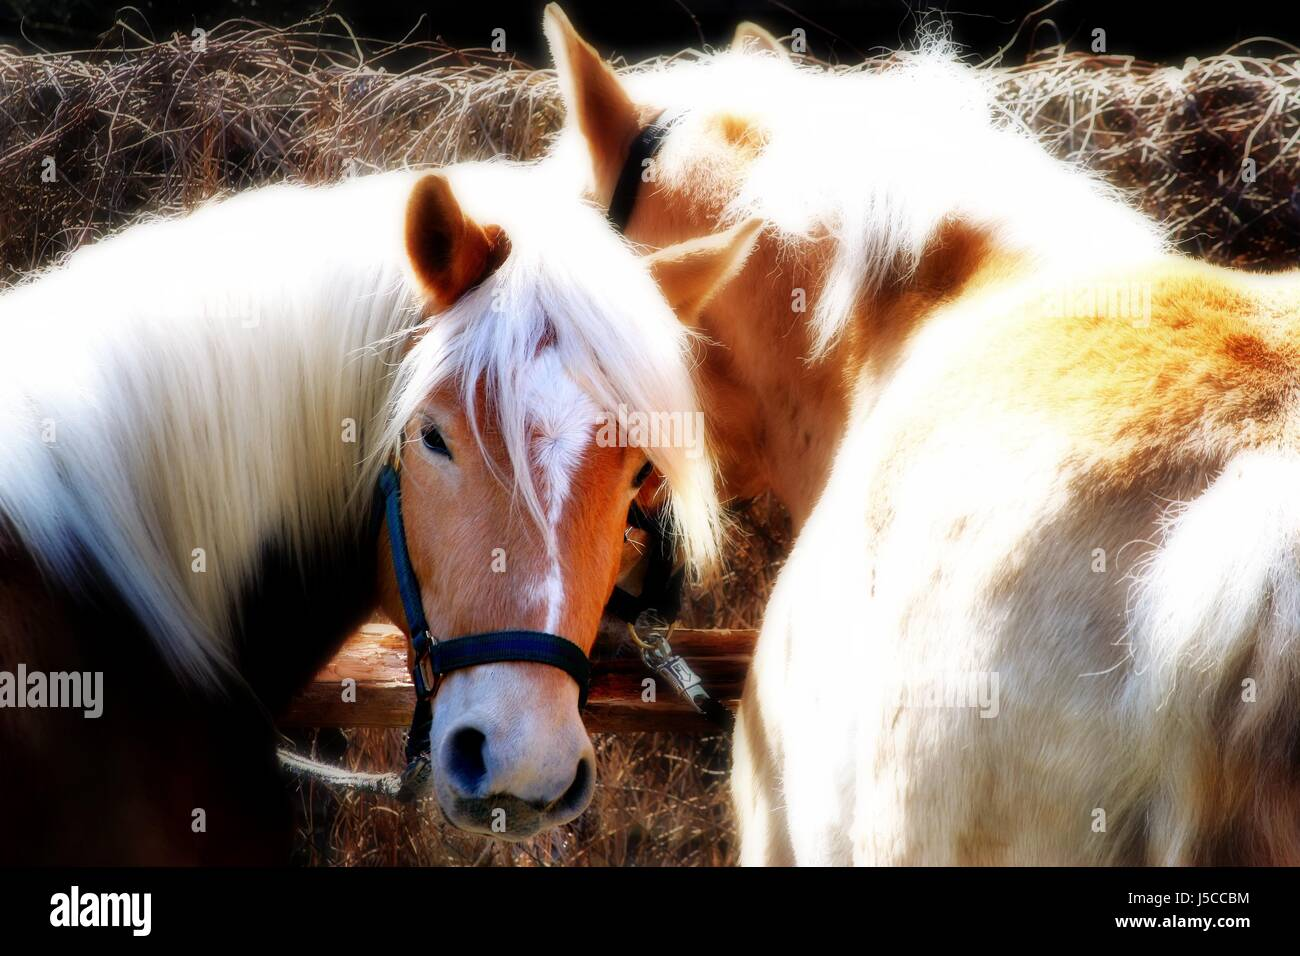 Drawing Horses Stockfotos & Drawing Horses Bilder - Alamy